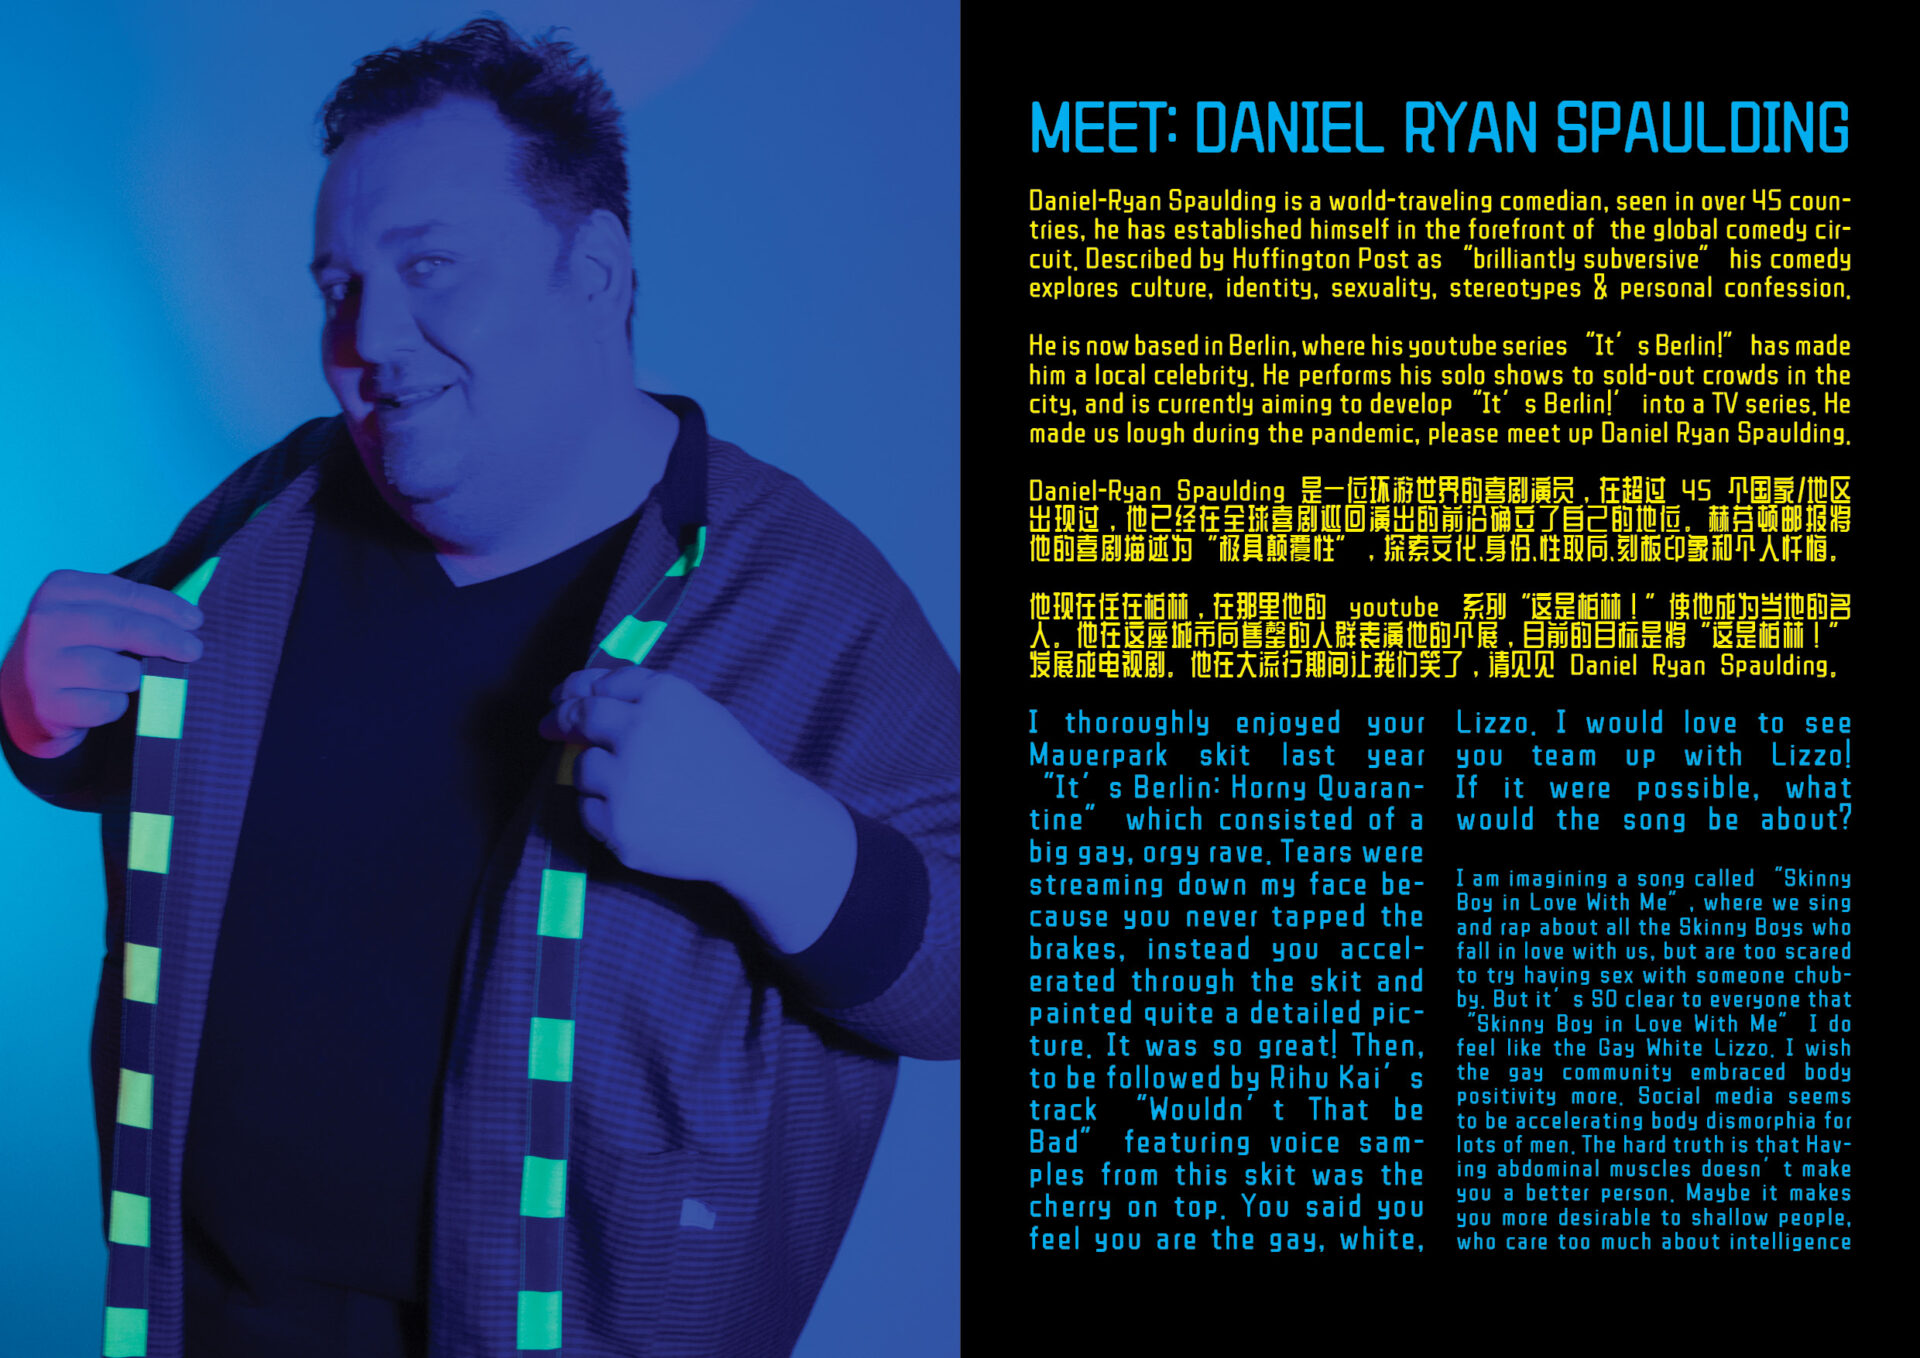 MEET:Daniel Ryan Spaulding interview by Scruffy Kitttn and photos by KEYI STUDIO with fashion from Studio183 Berlin